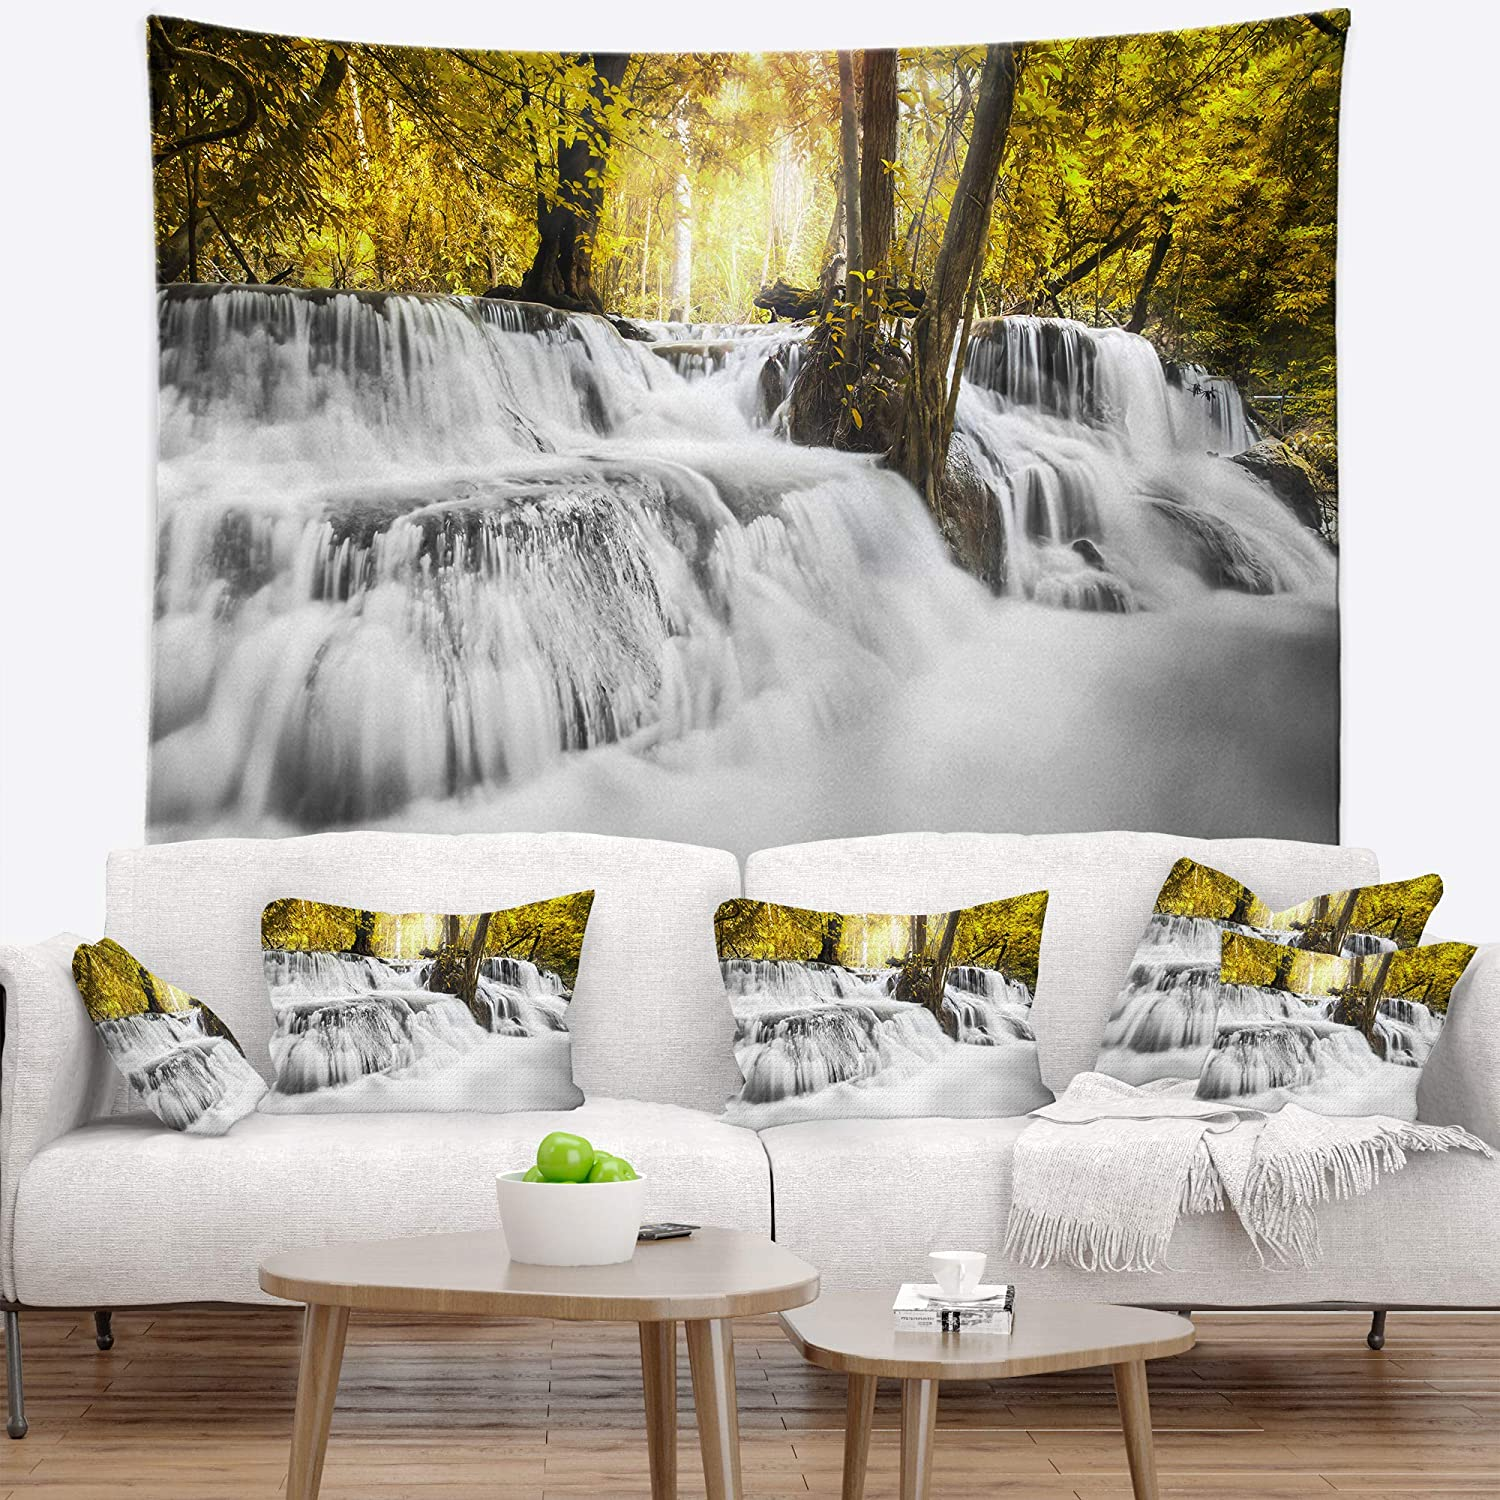 Designart Tap7139 80 68 Colorful Erawan Waterfall Landscape Photography Blanket Décor Art For Home And Office Wall Tapestry X Large X 68 In Created On Lightweight Polyester Fabric 80 In Home Kitchen Home Décor